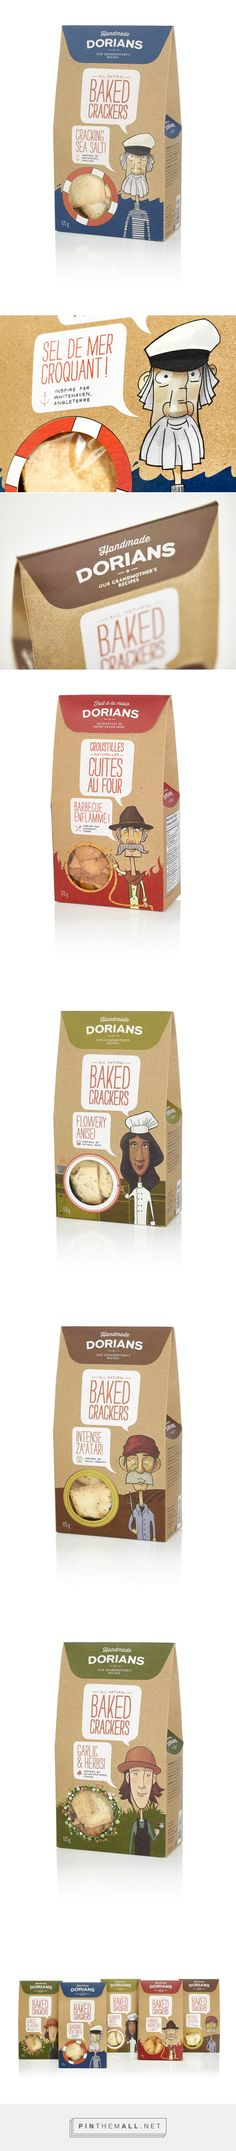 Dorians / line of healthy snack foods